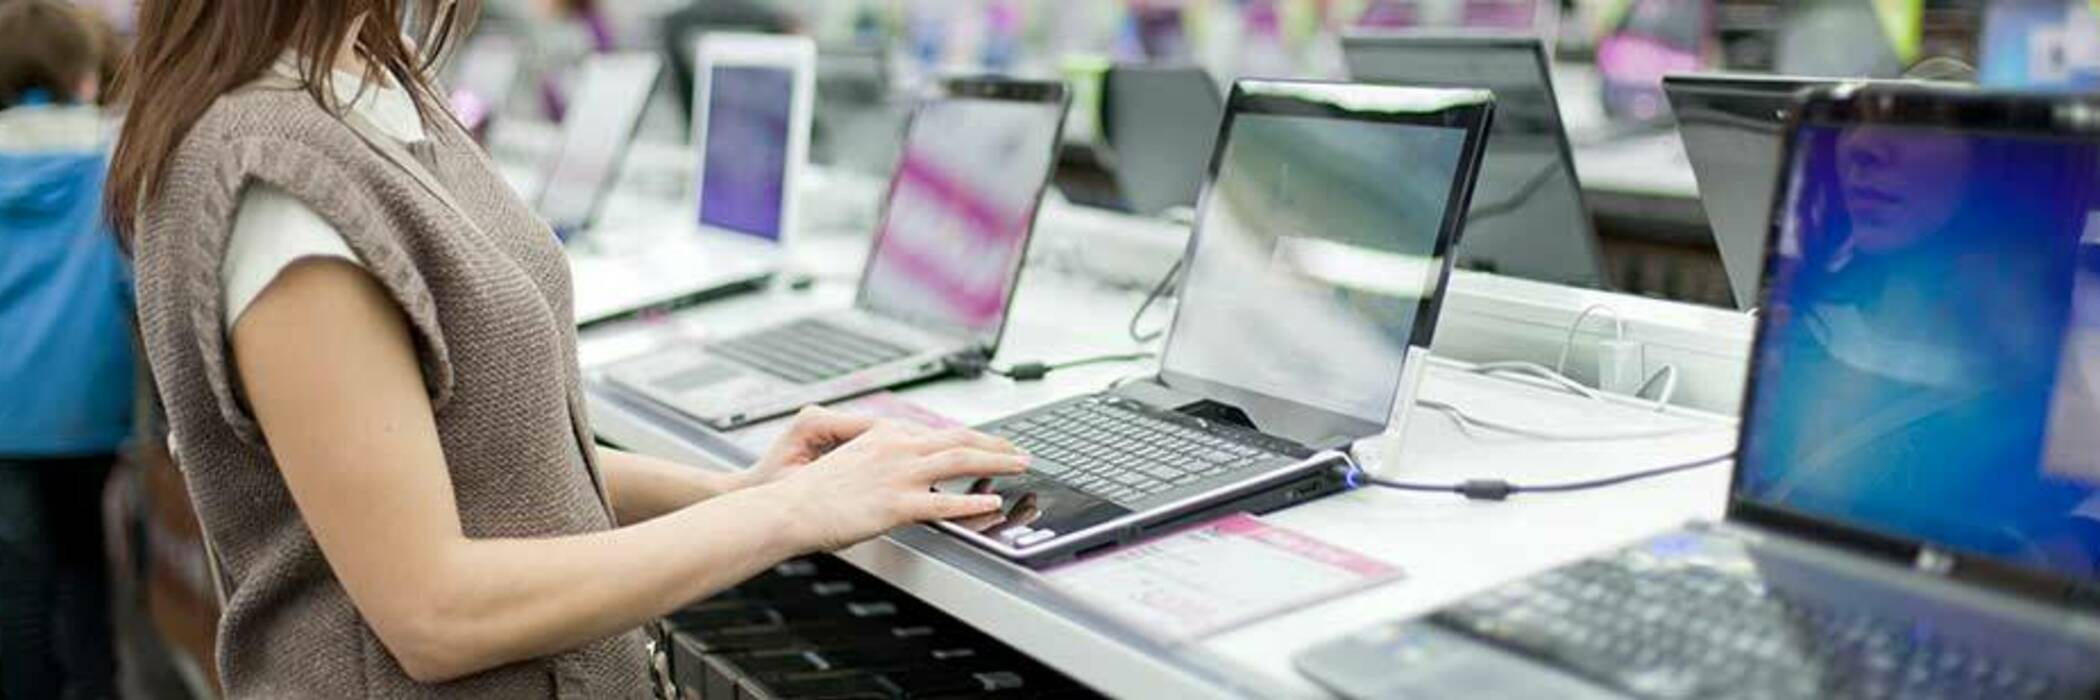 Woman typing on laptop in store.